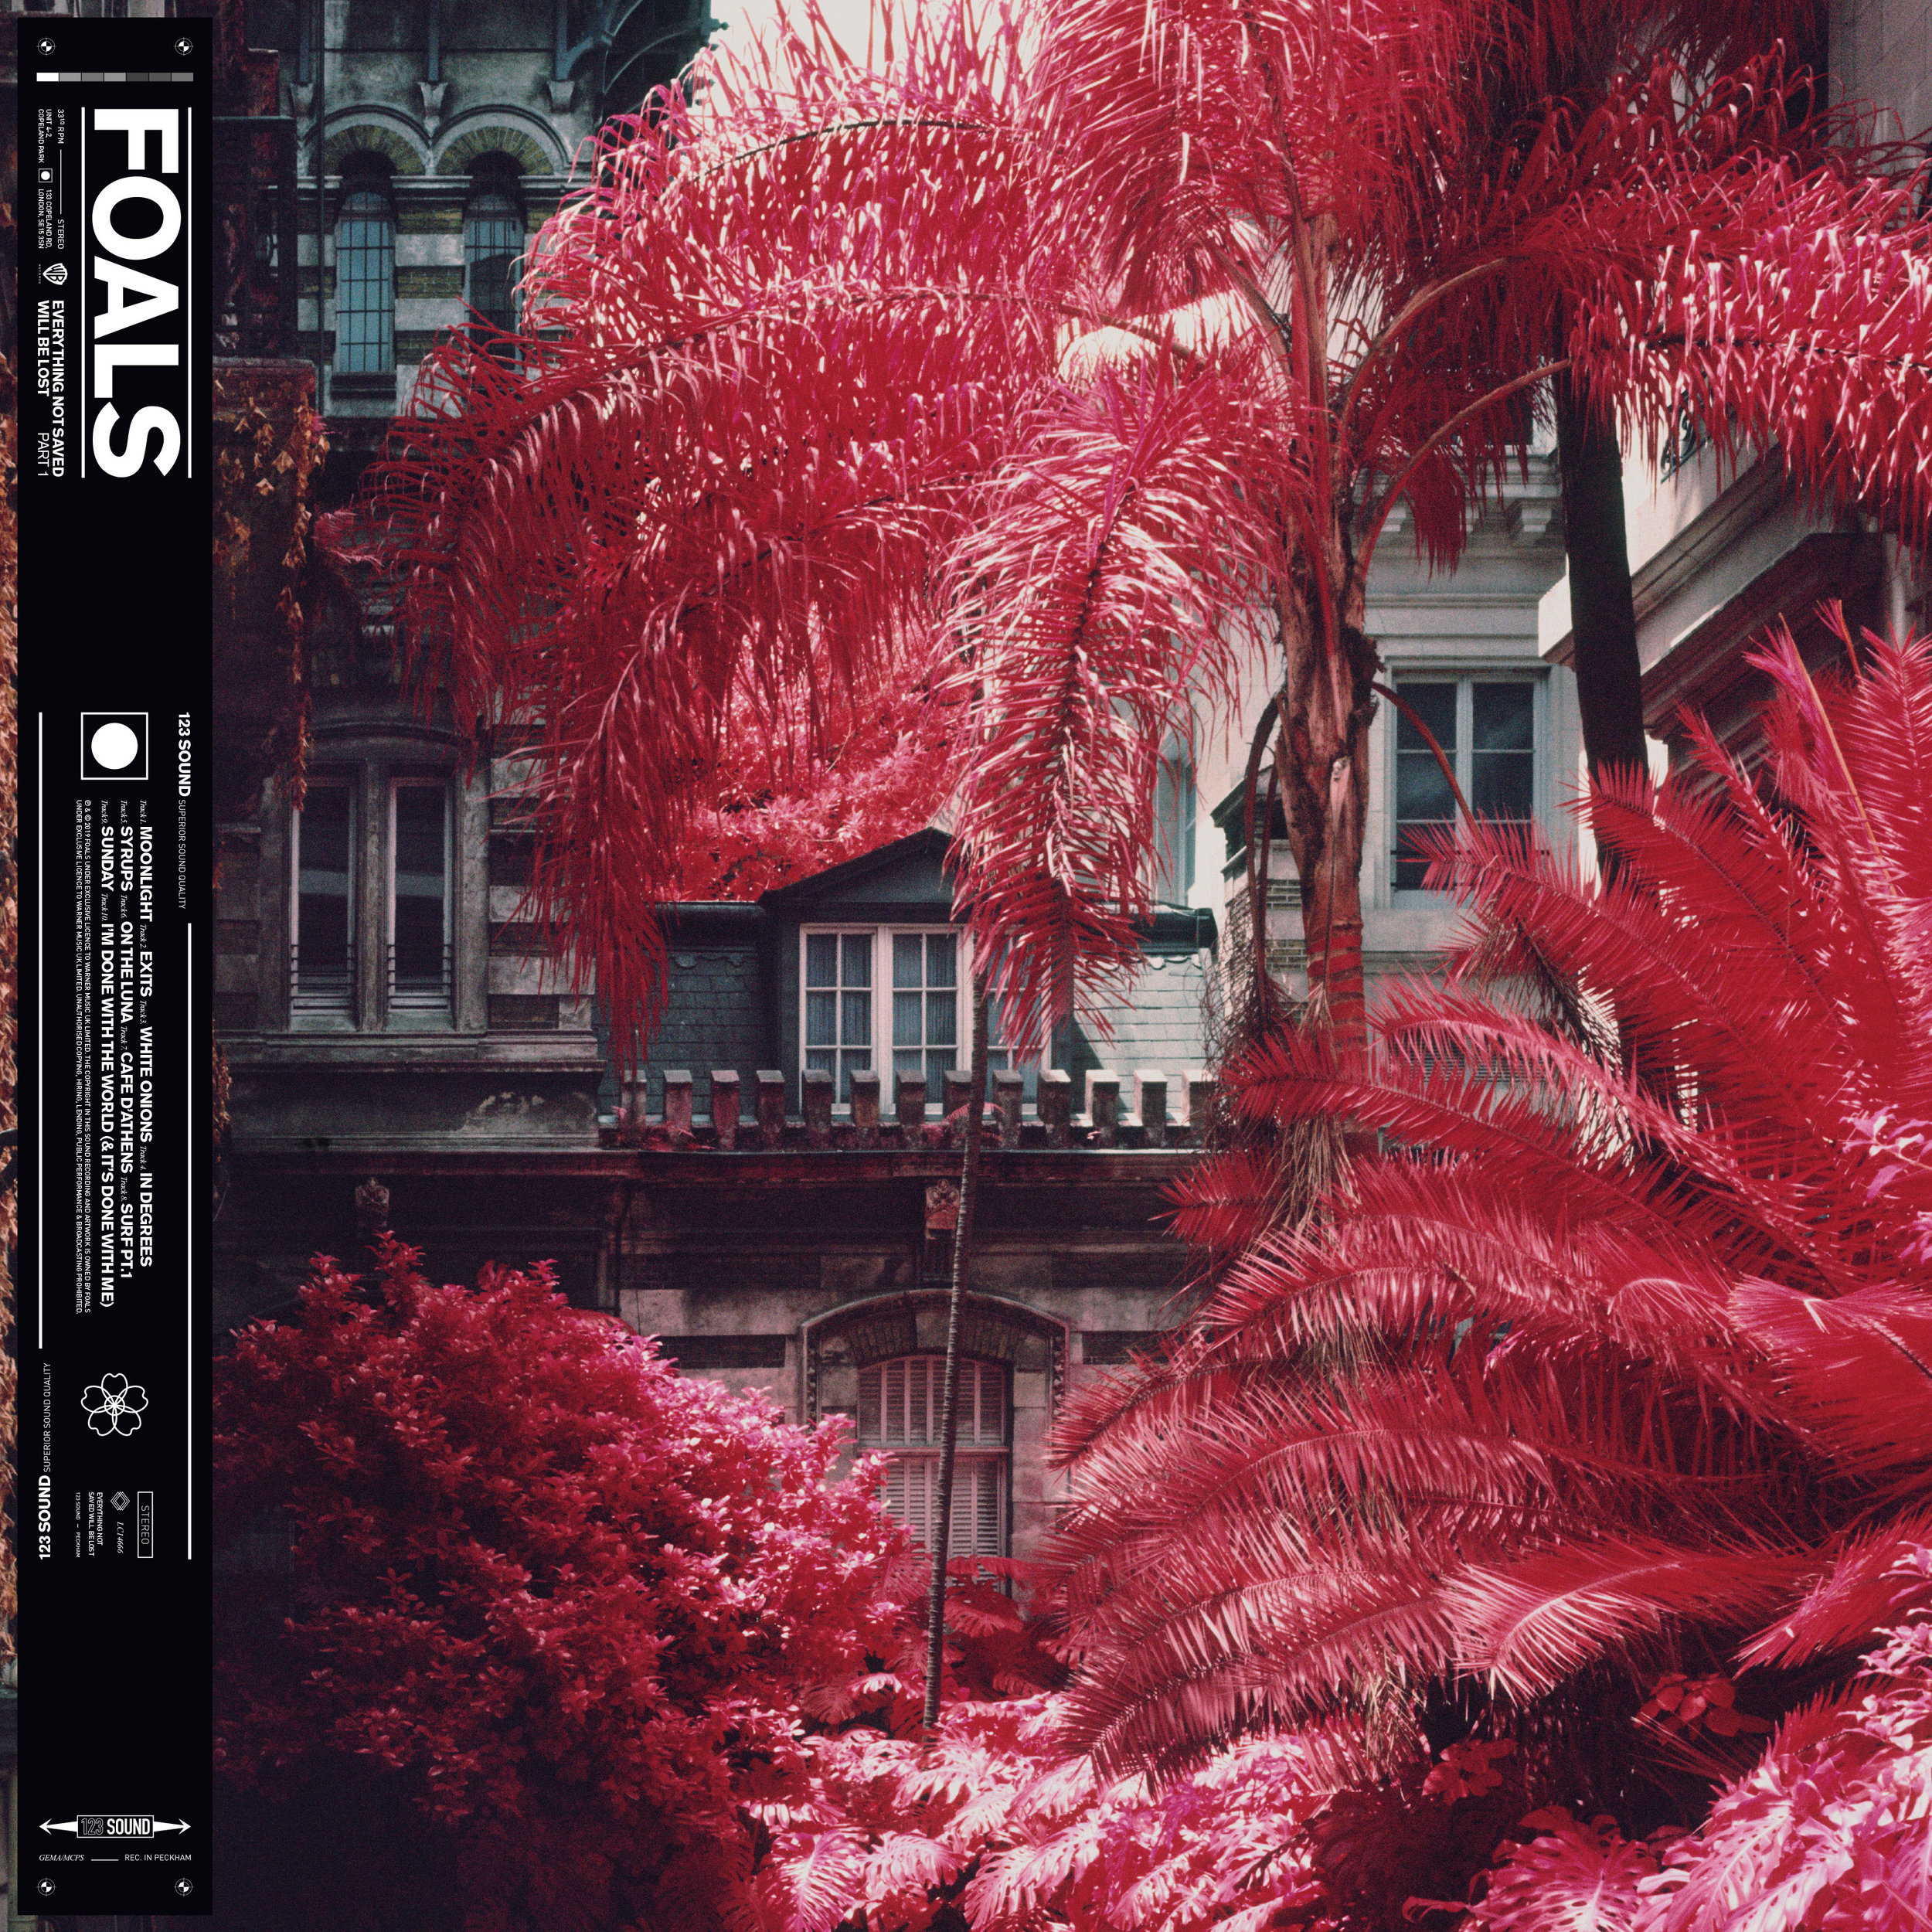 Foals - Everything Not Saved Will Be Lost - Part 1 (Album Review)